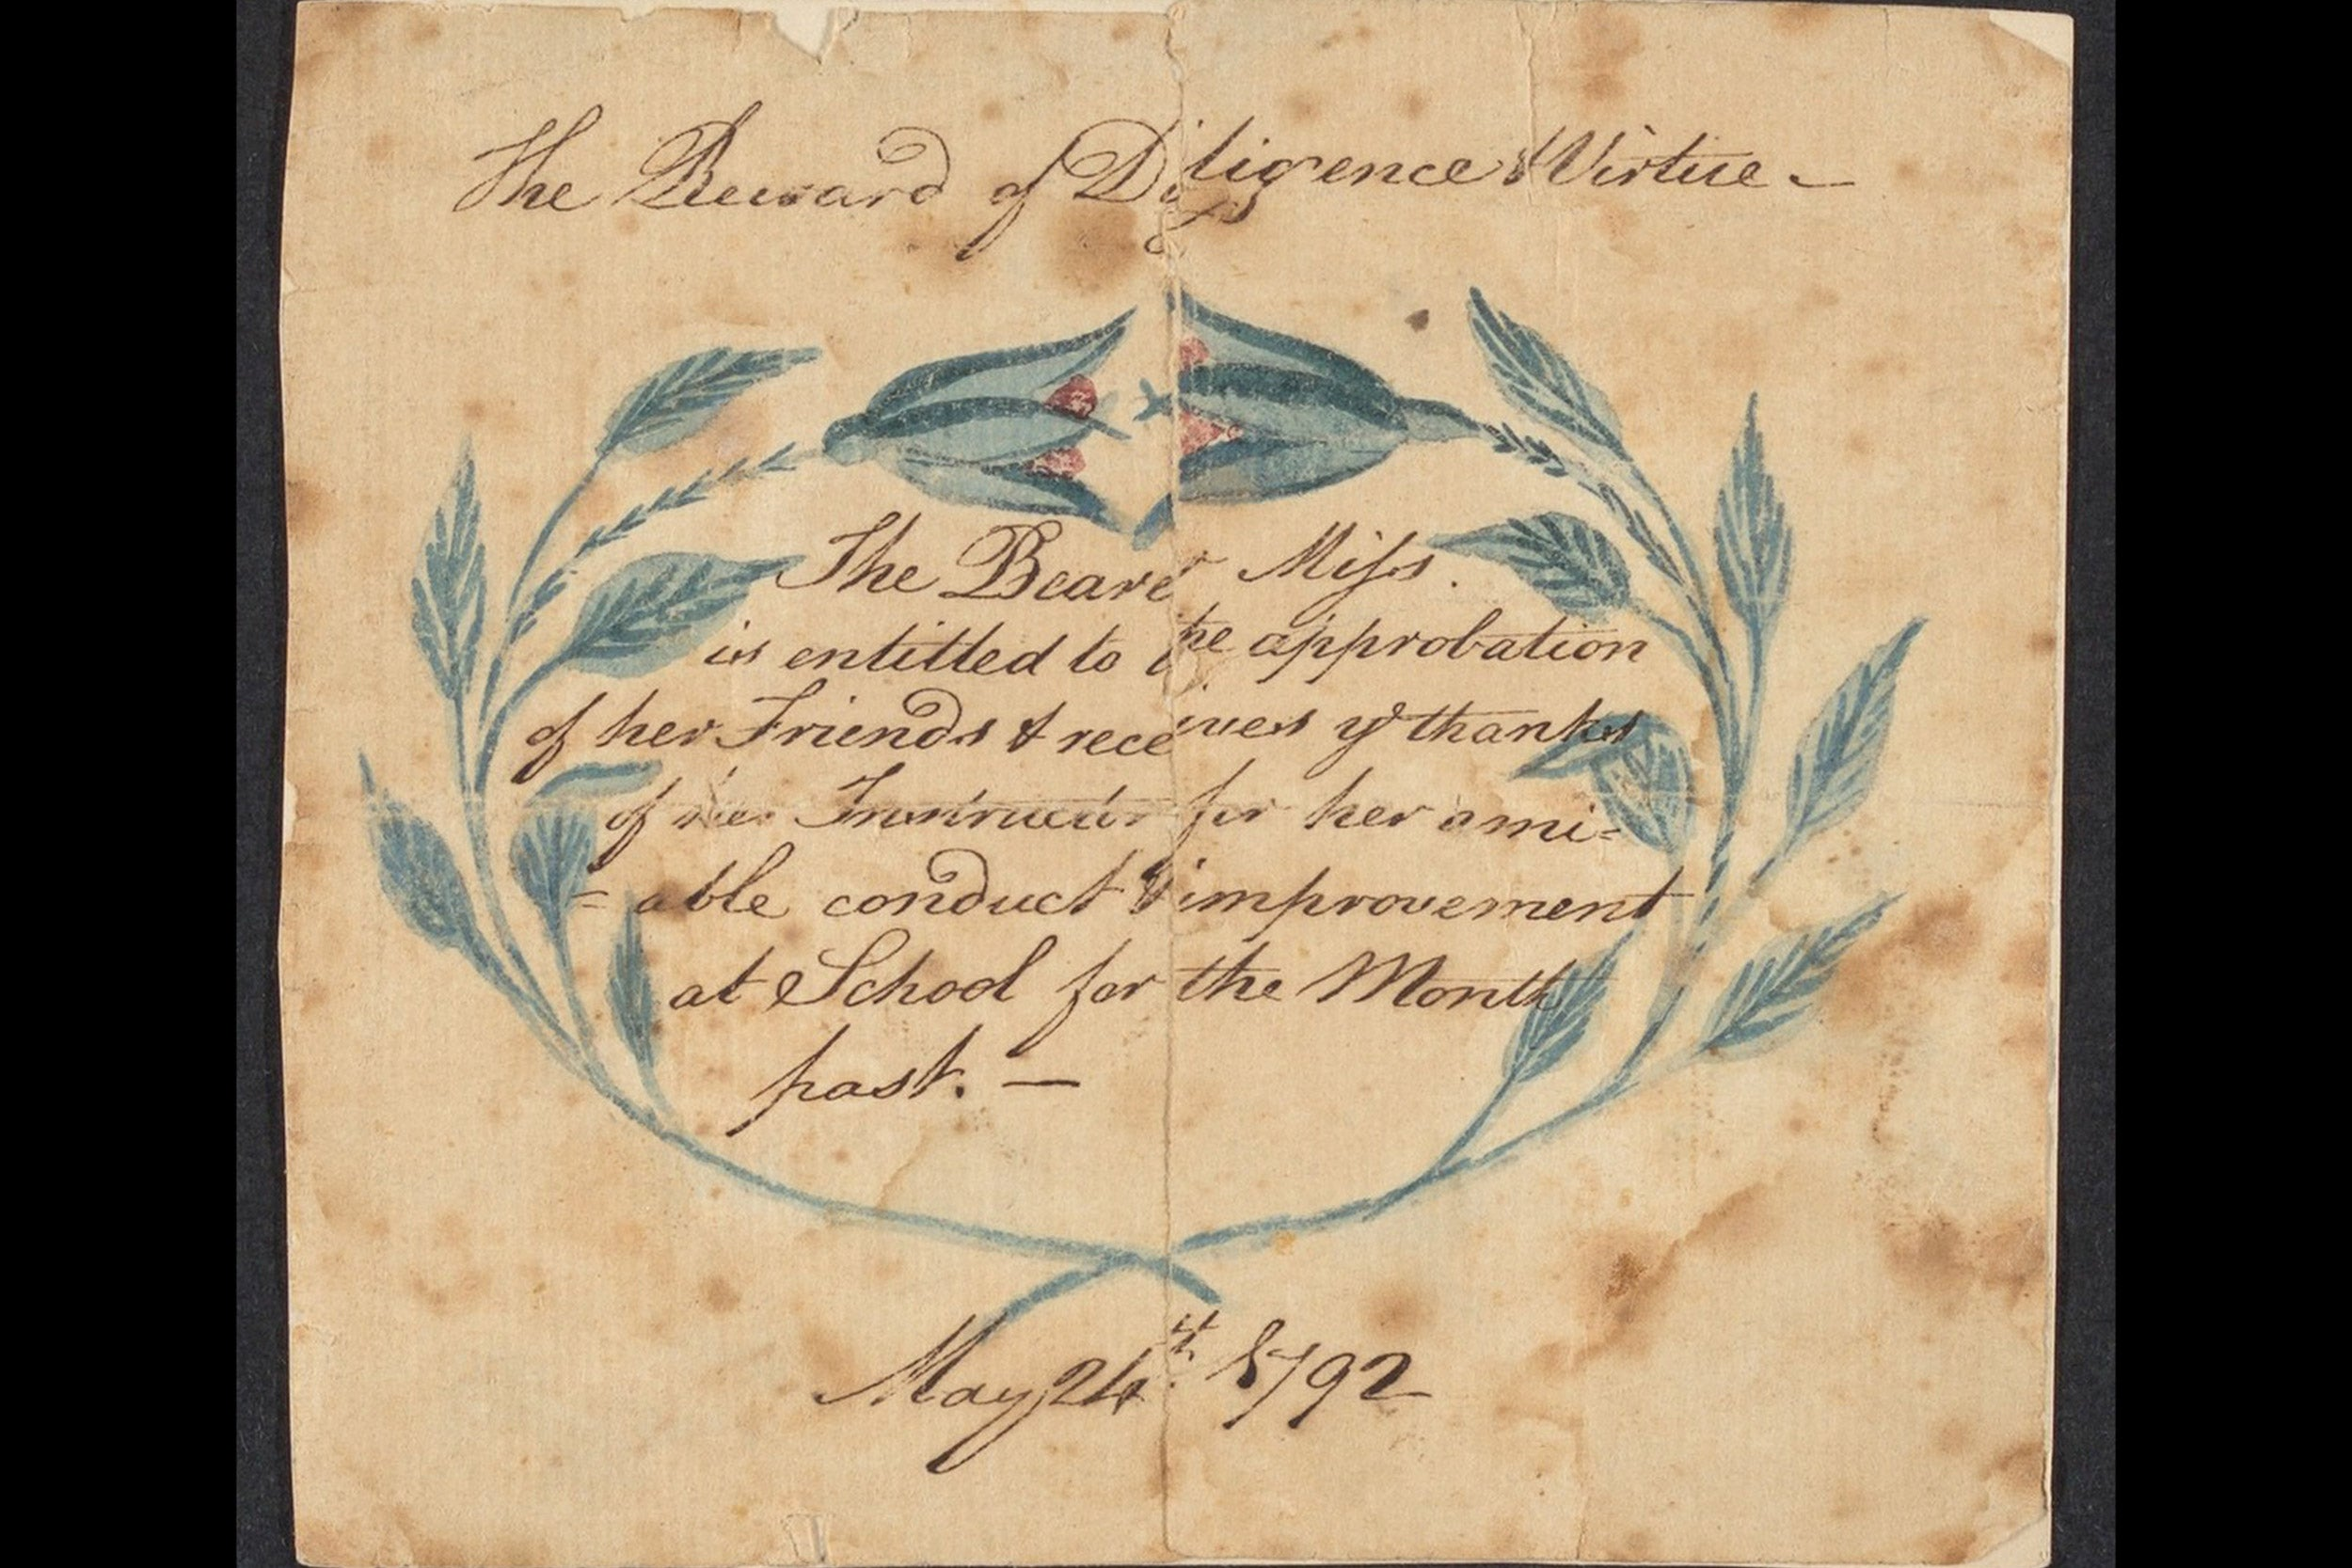 A school award given in 1792.